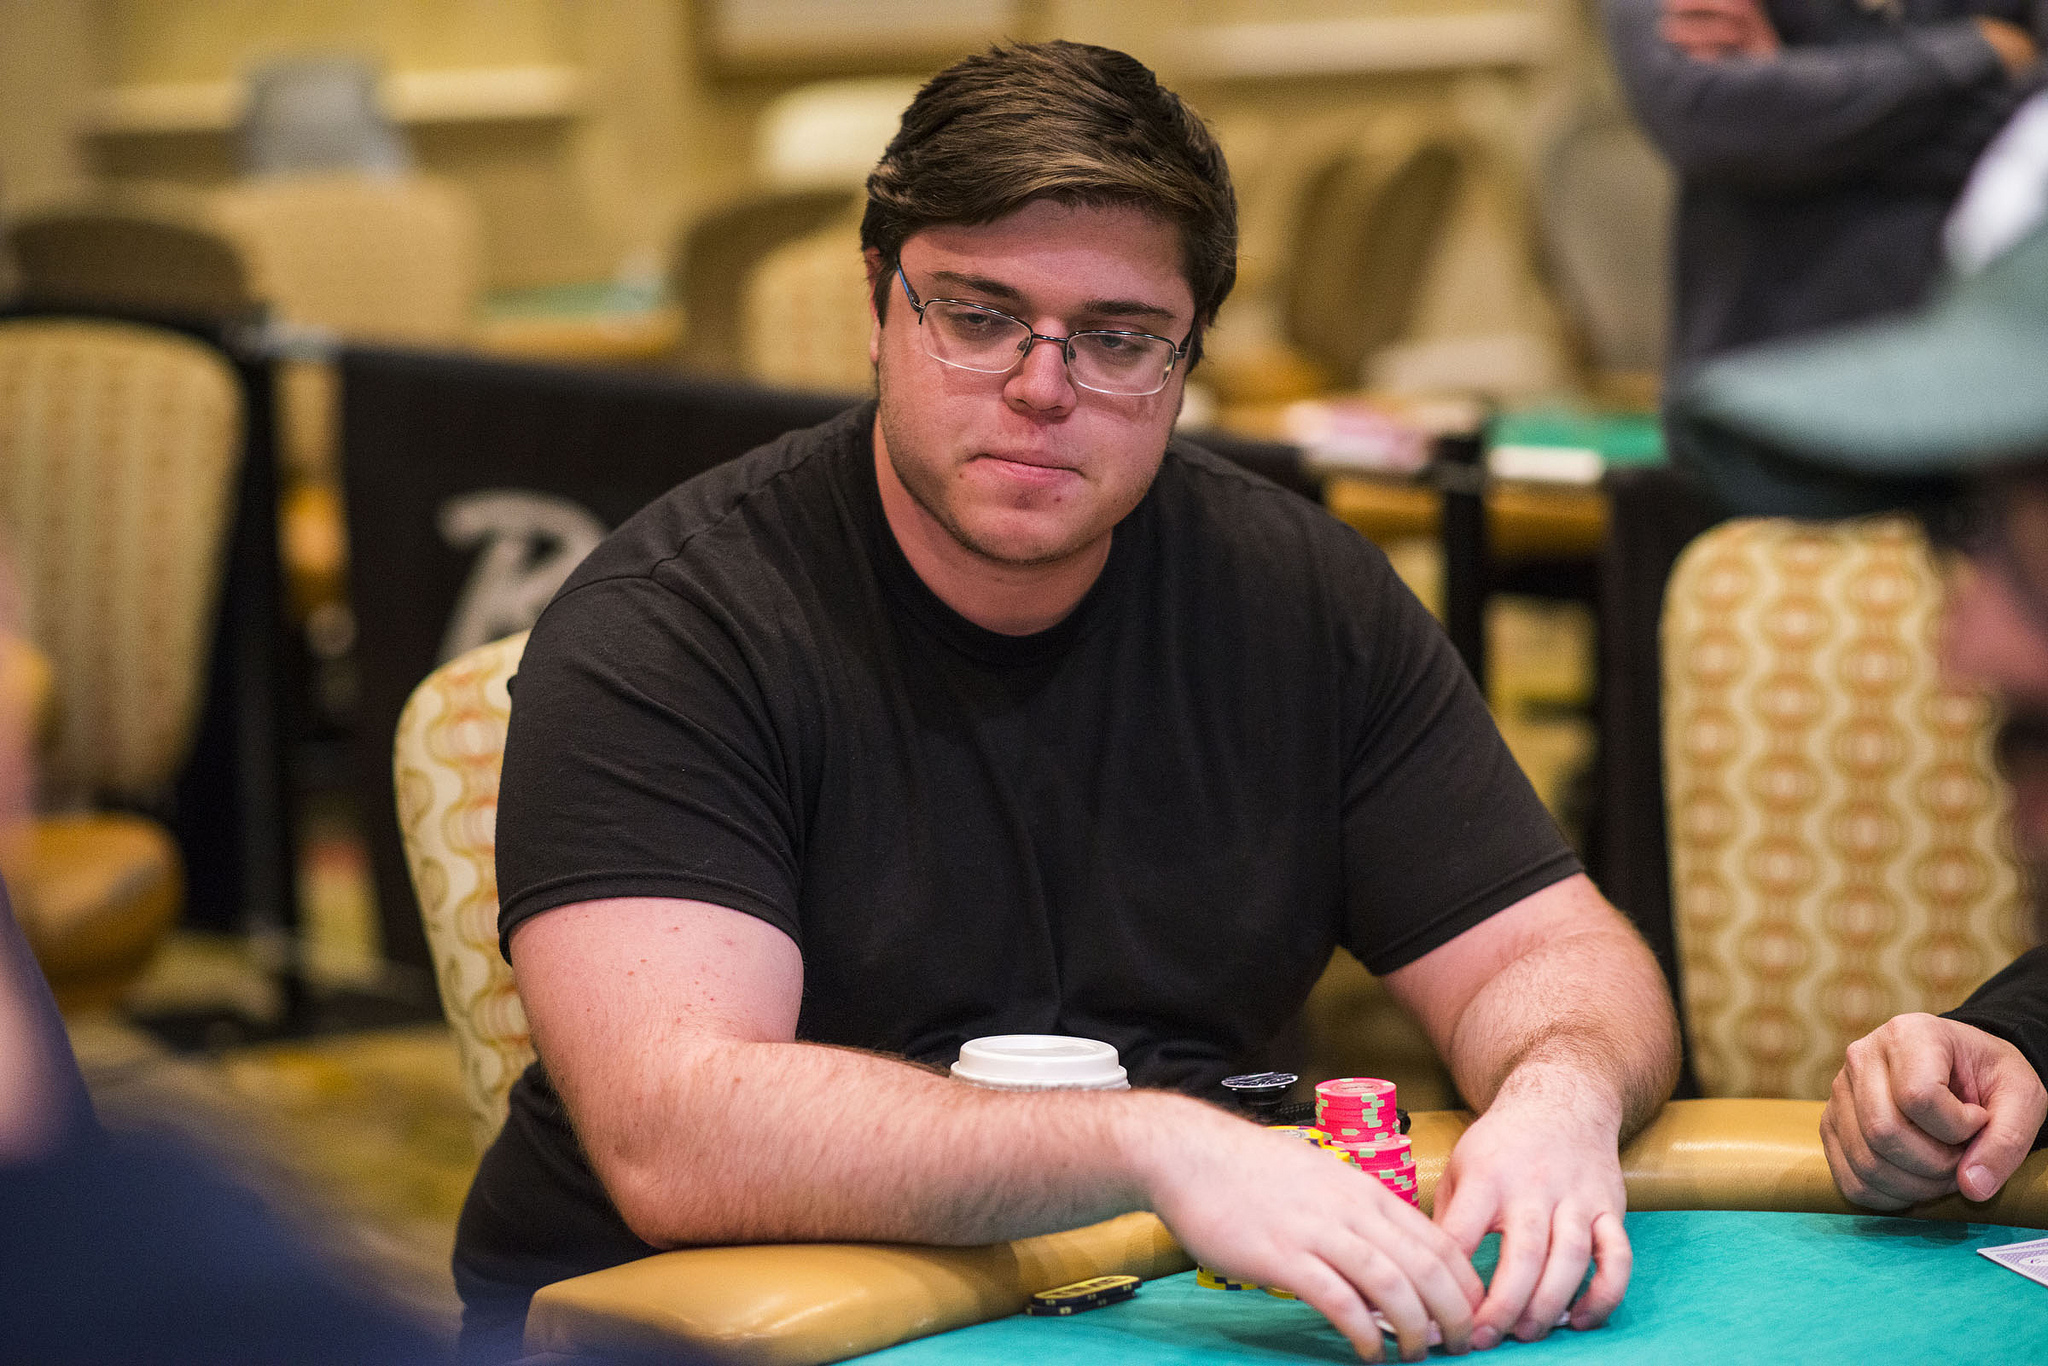 Ian O'Hara is one of the top contenders as the WPT Borgata Winer Poker Open hits PokerGO live next week!